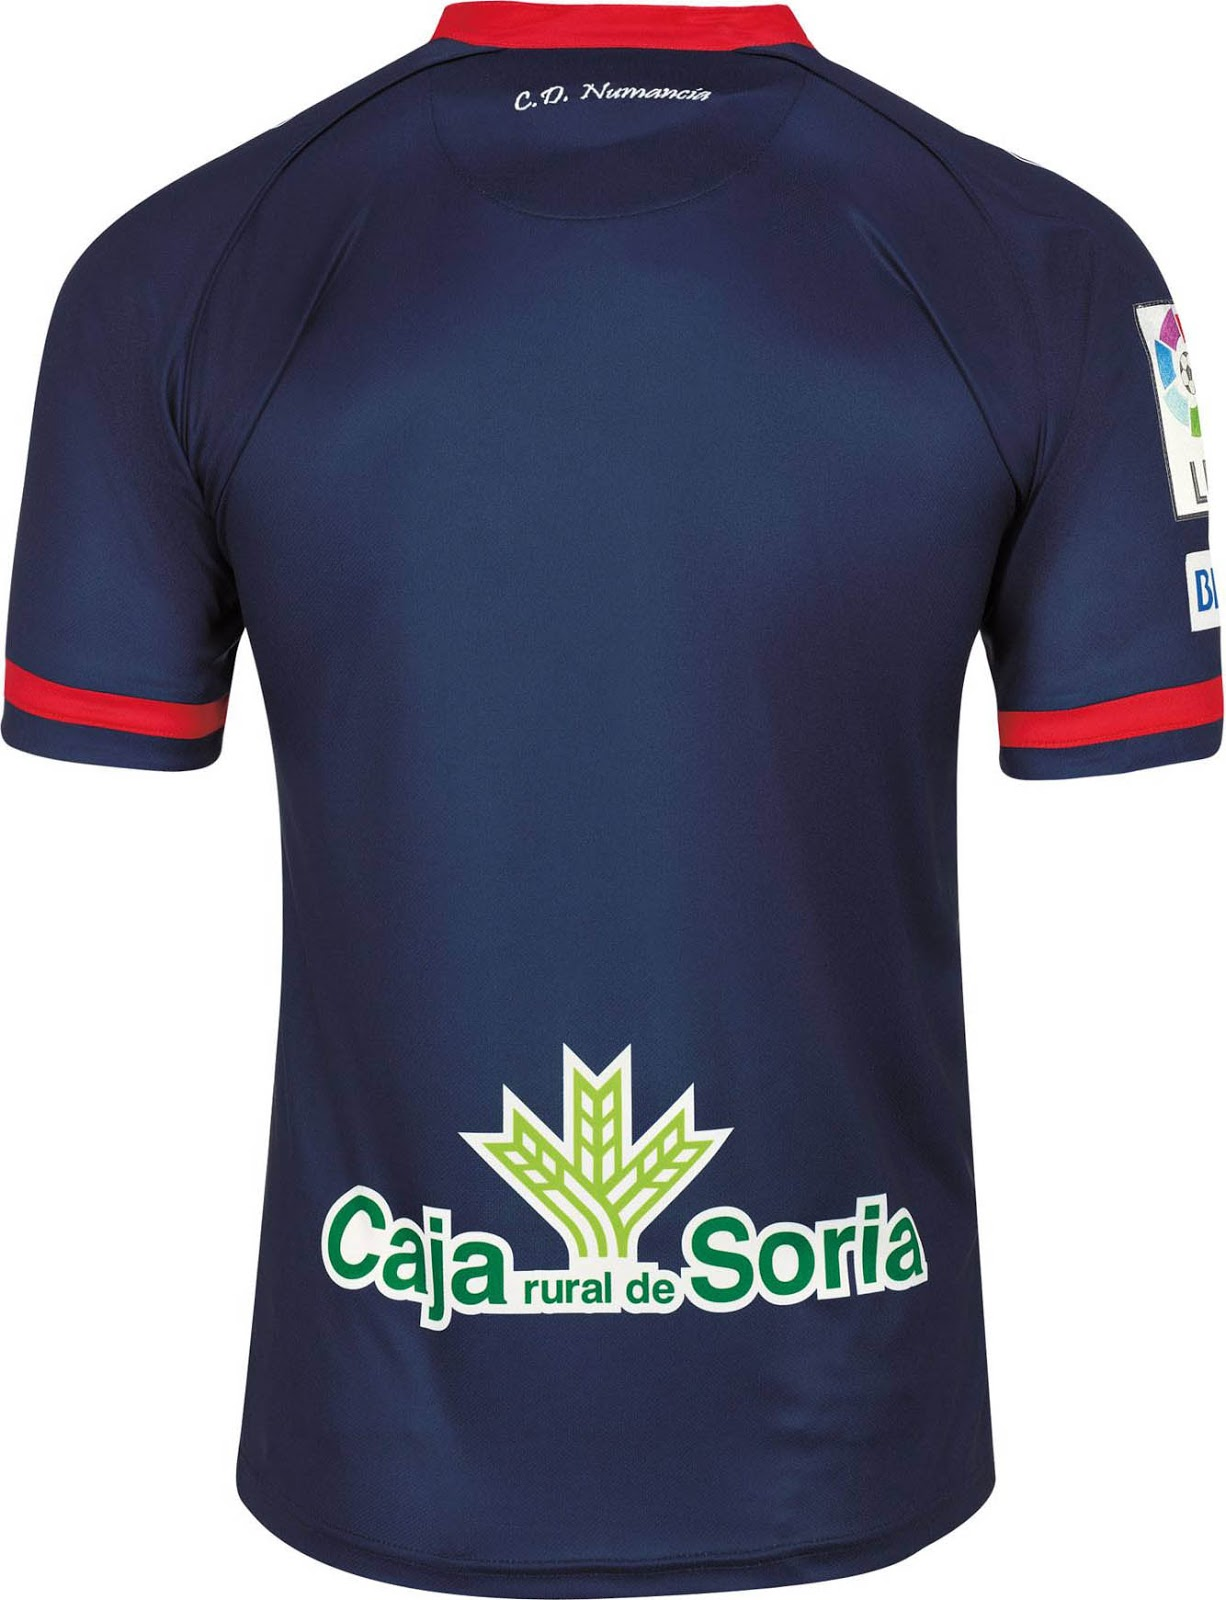 fe5c9706c The new Numancia 2015-16 Third Kit combines the main color navy with red  applications, based on the same template as the Numancia Home Kit.